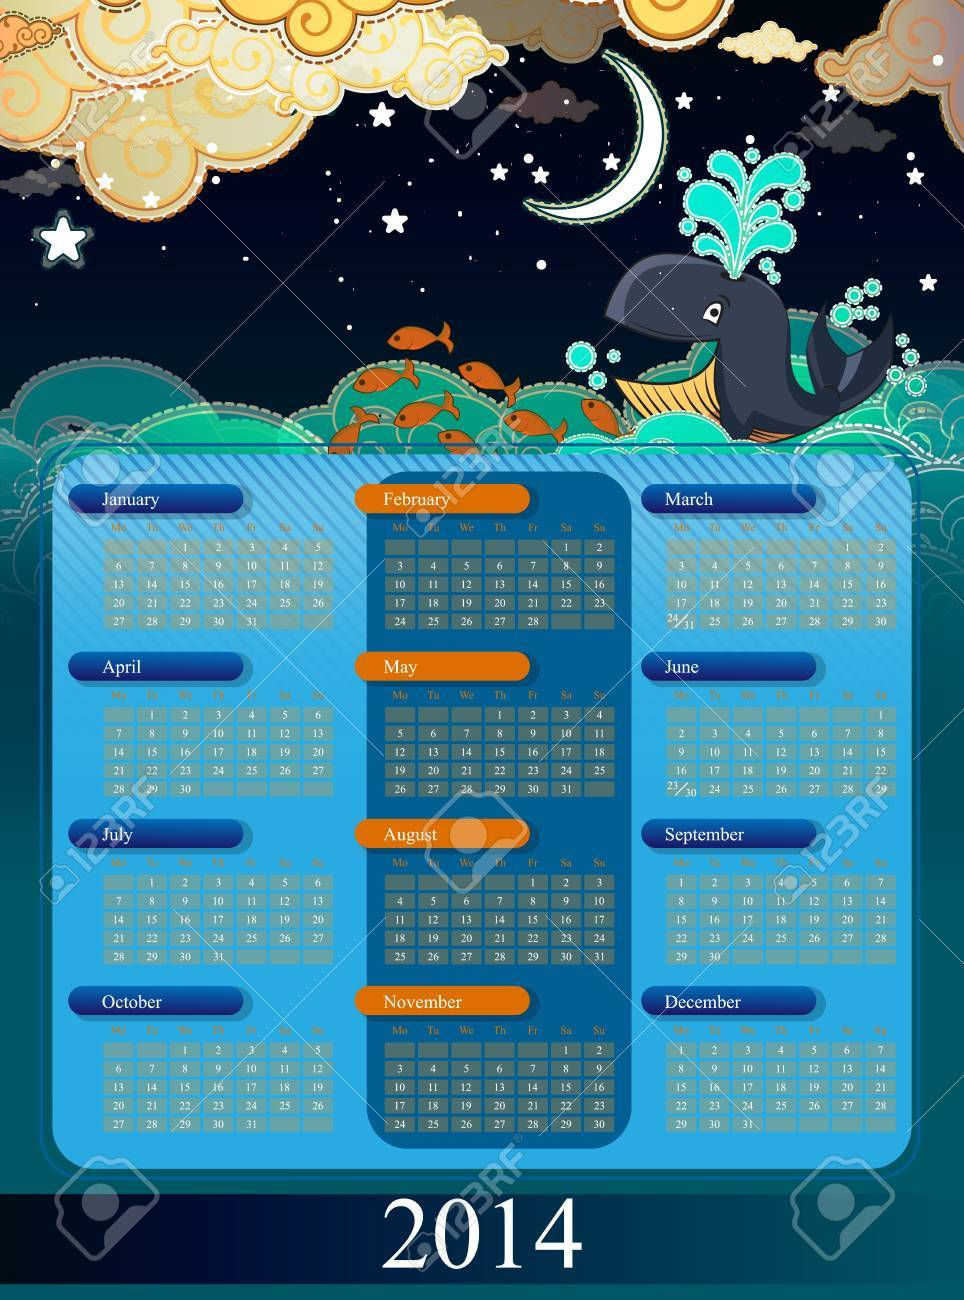 Calendar 2014 with cartoon clouds and whale Stock Vector - 21020328